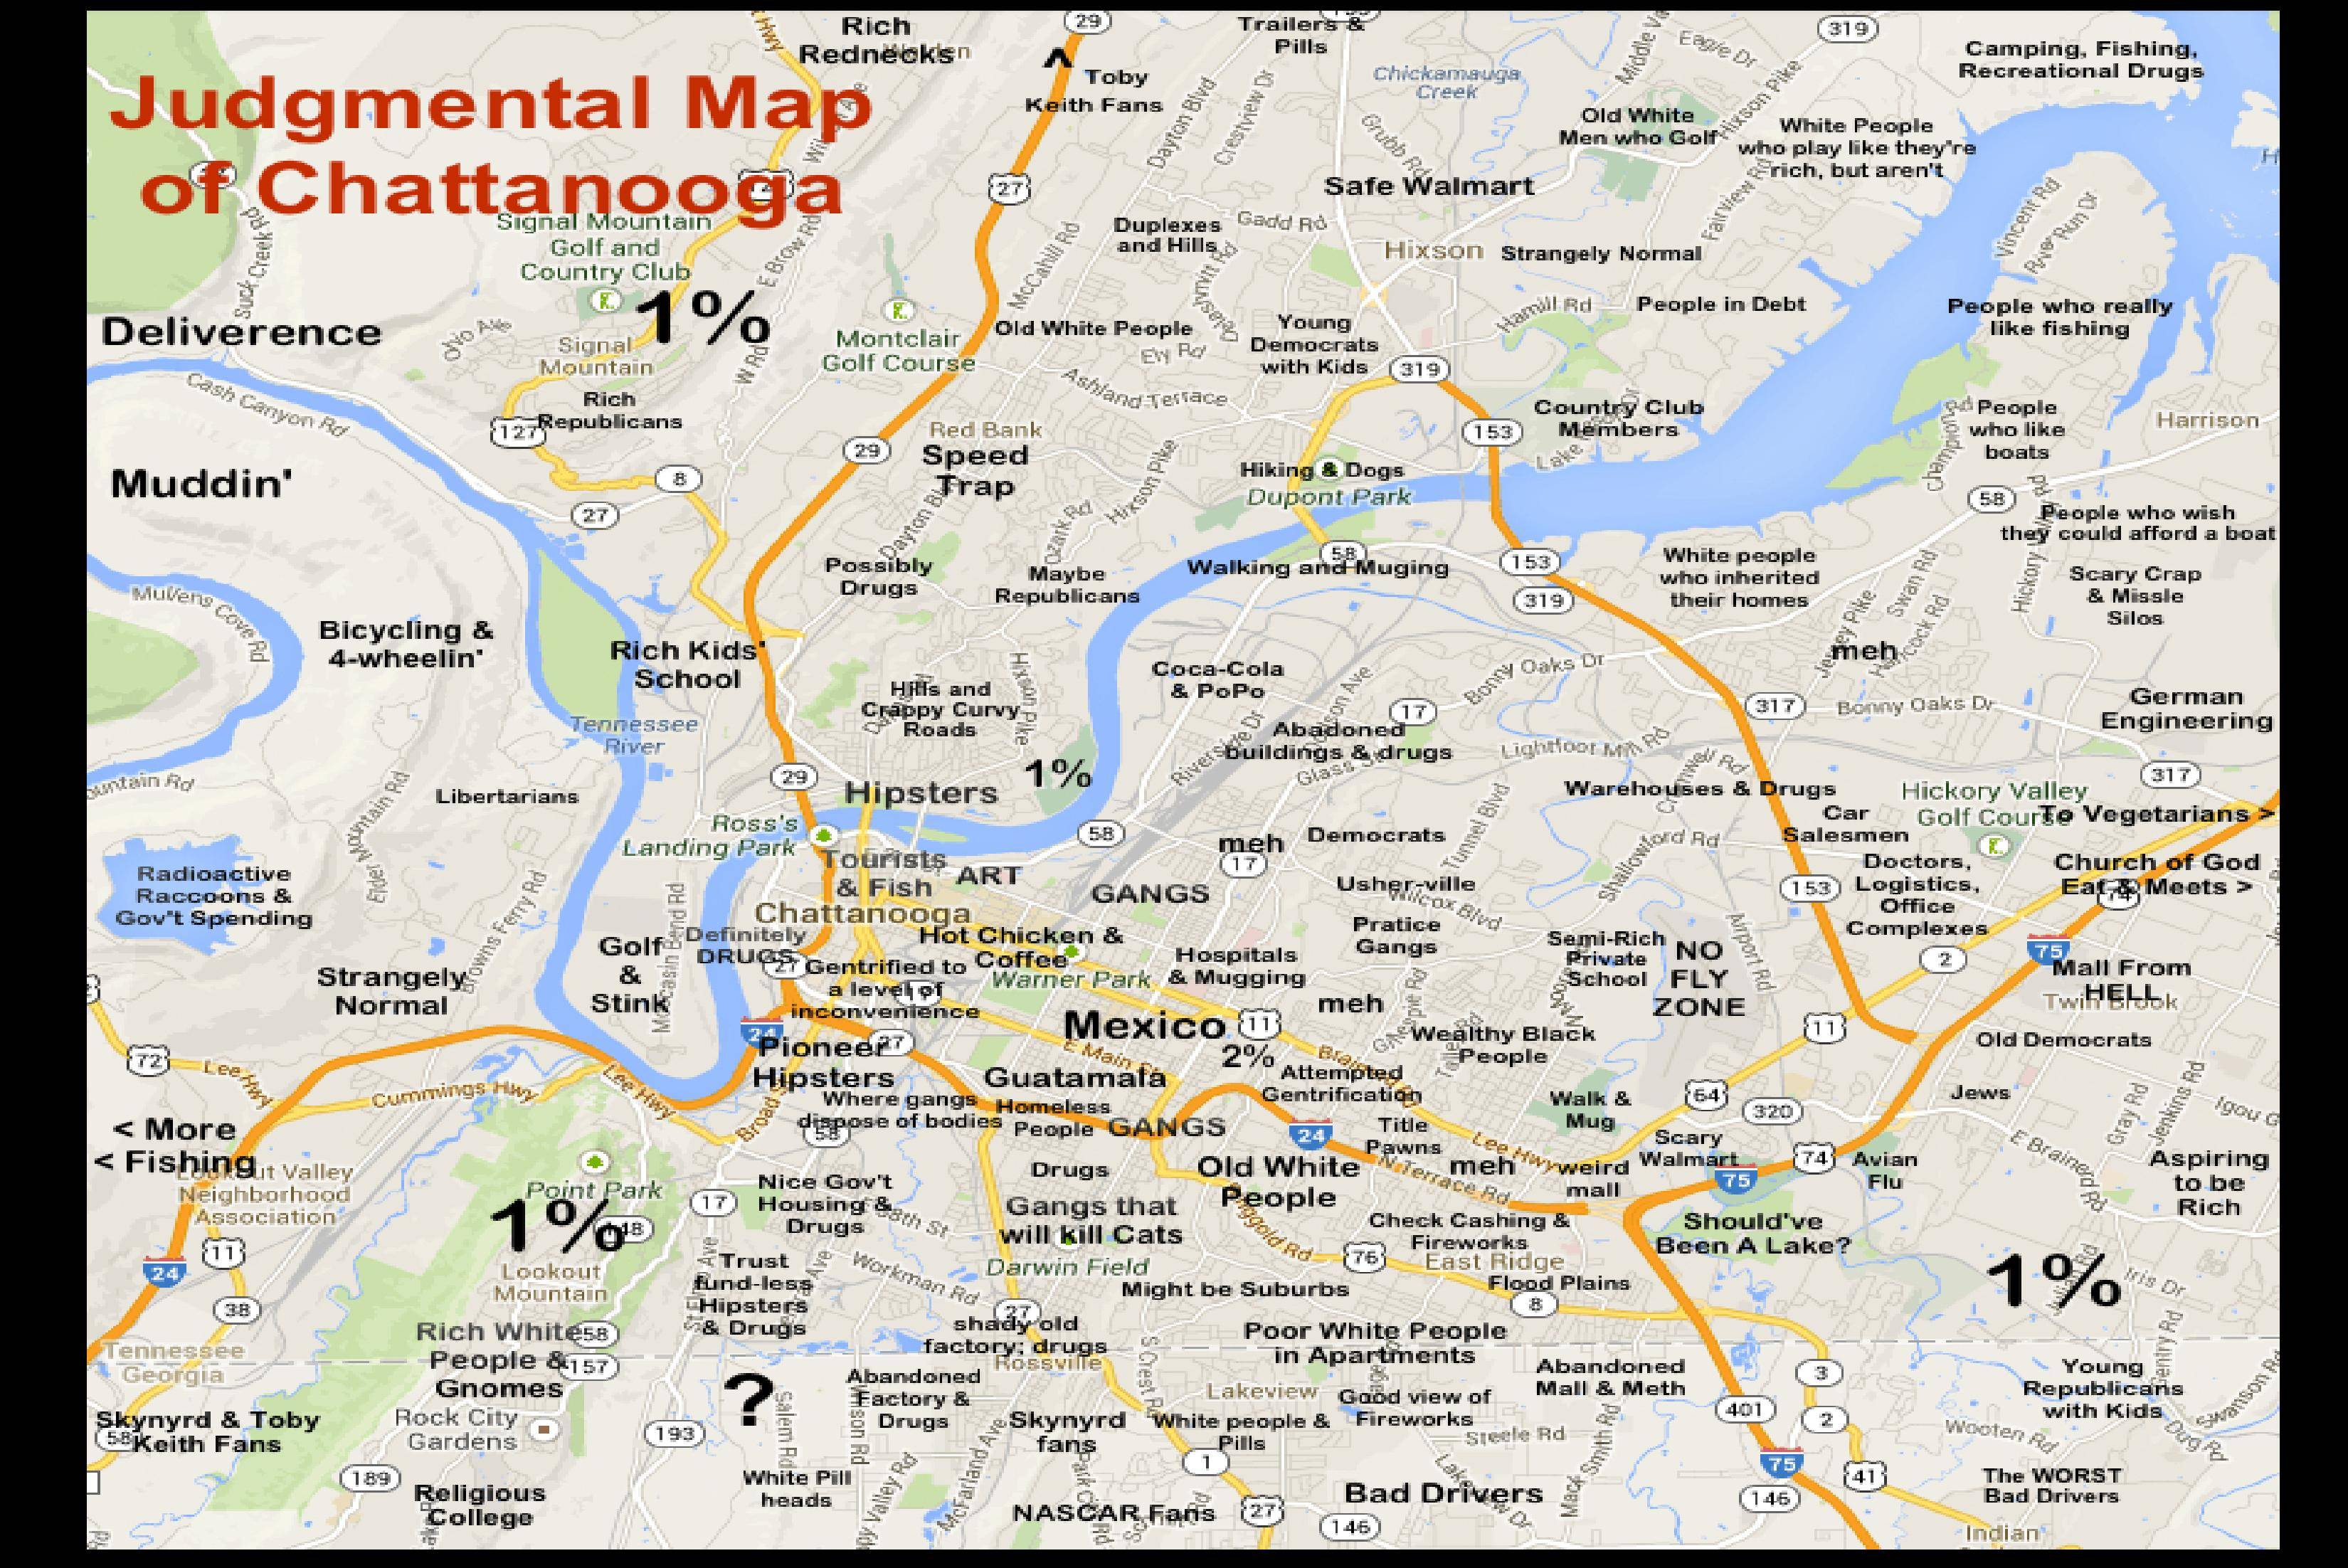 Remember the judgmental map of Chattanooga? Now there are ...